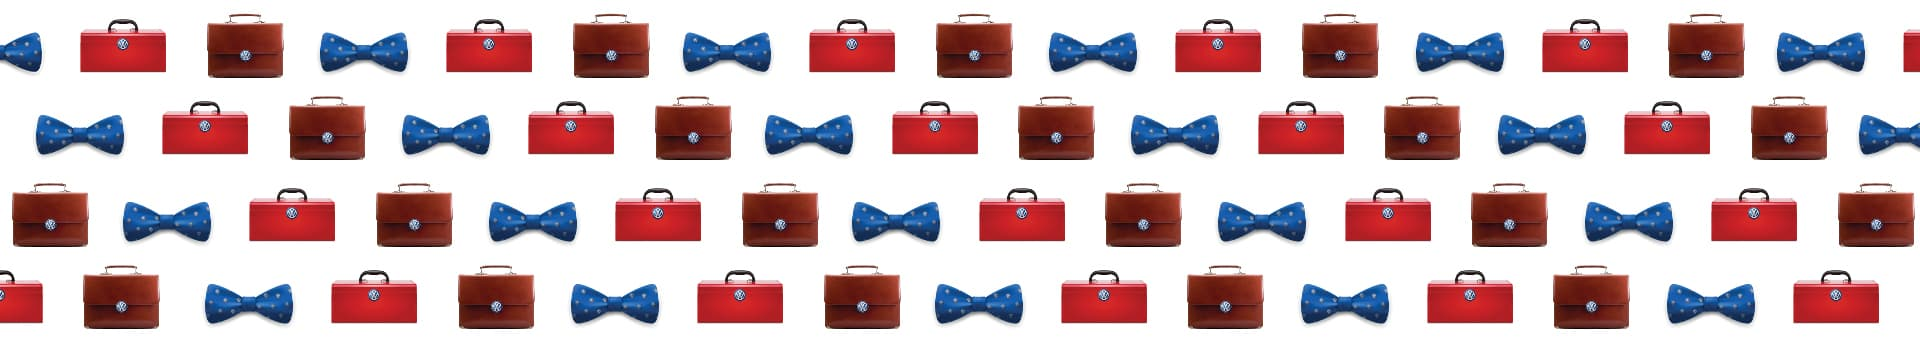 Bow ties and briefcases